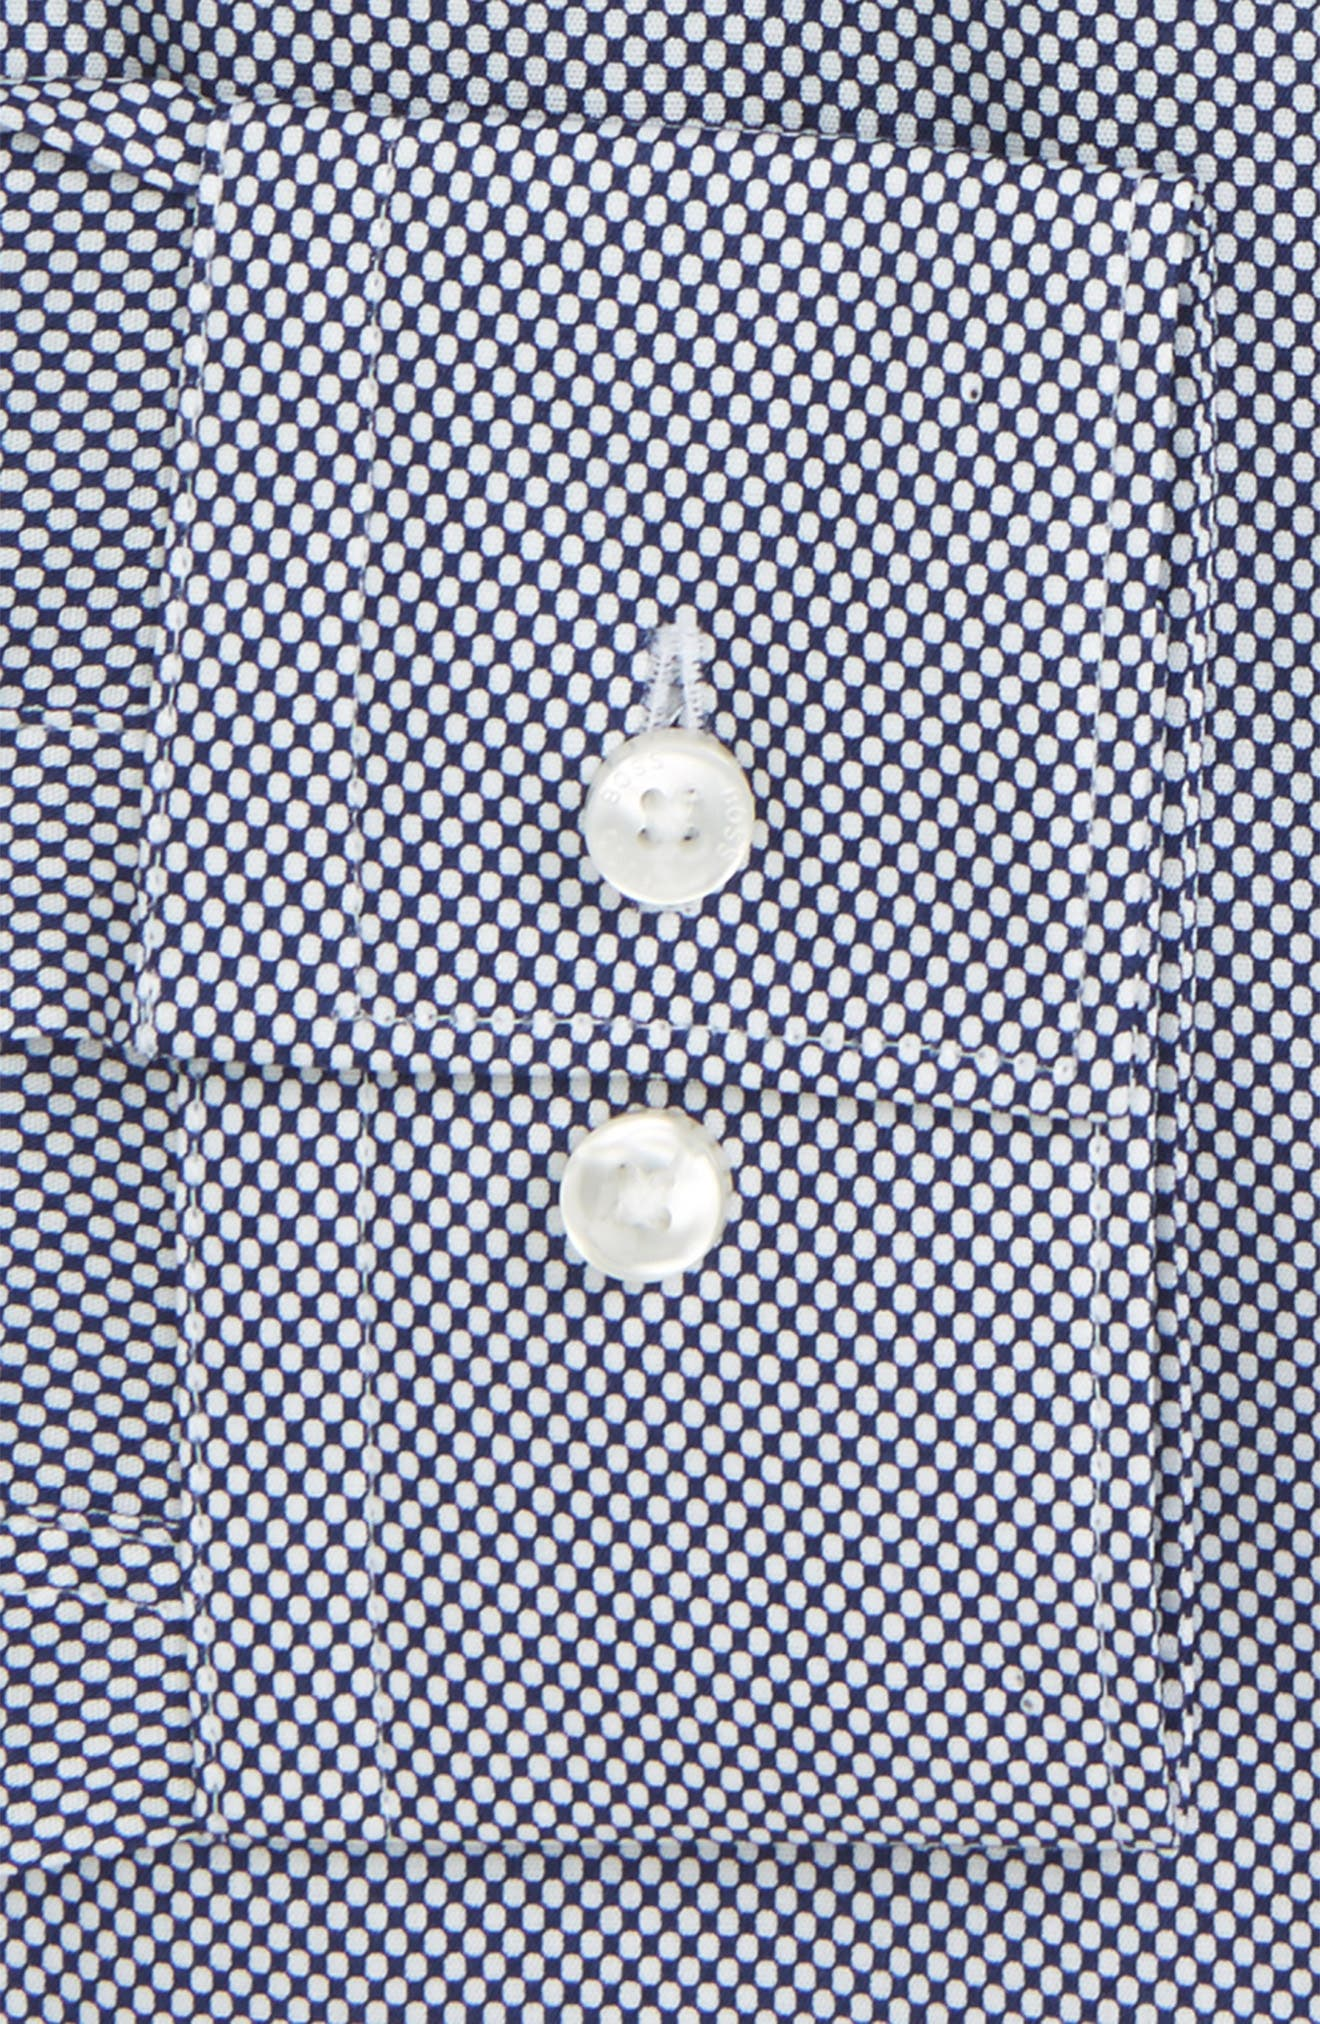 Ismo Slim Fit Dot Dress Shirt,                             Alternate thumbnail 6, color,                             410